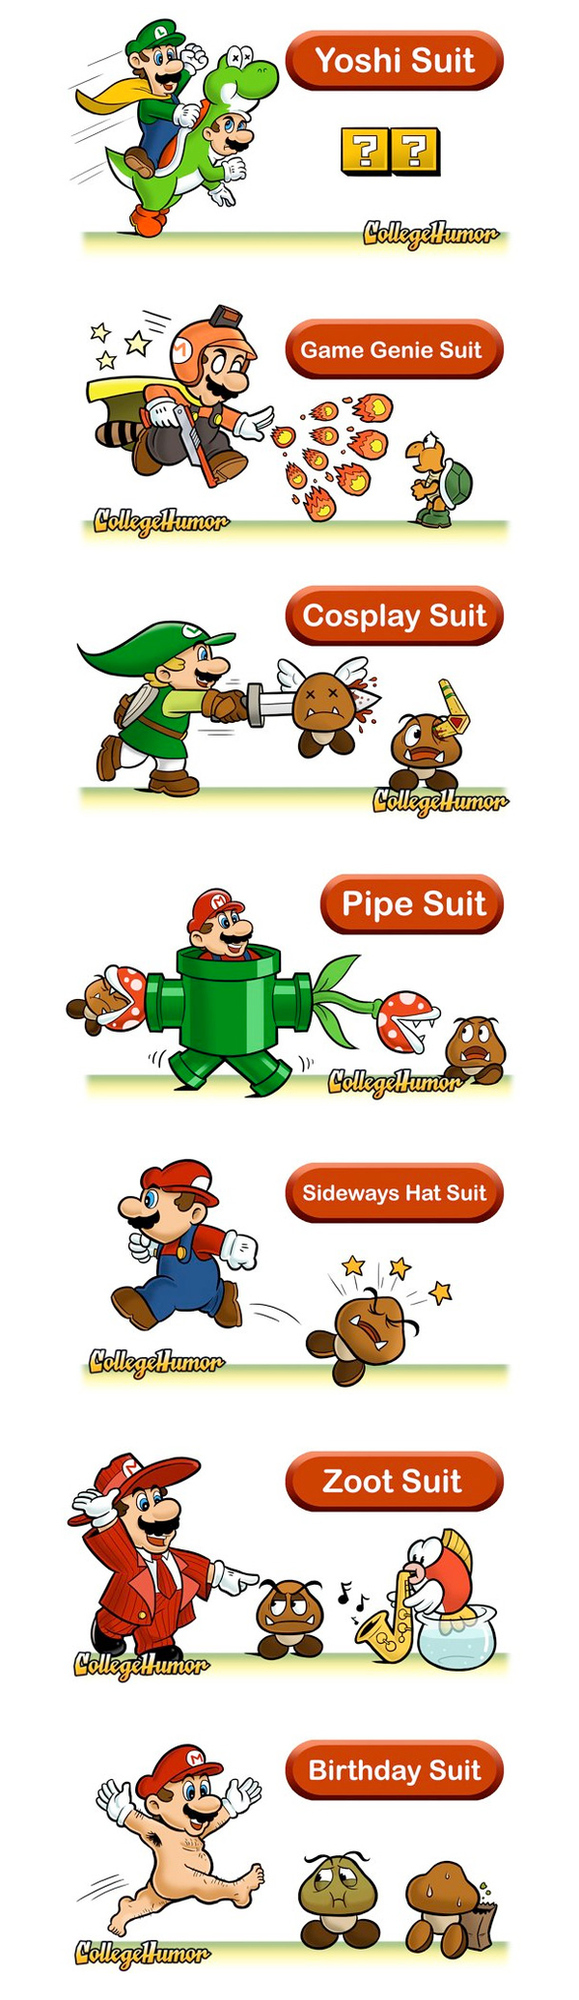 Seven Mario Suits That Should Exist